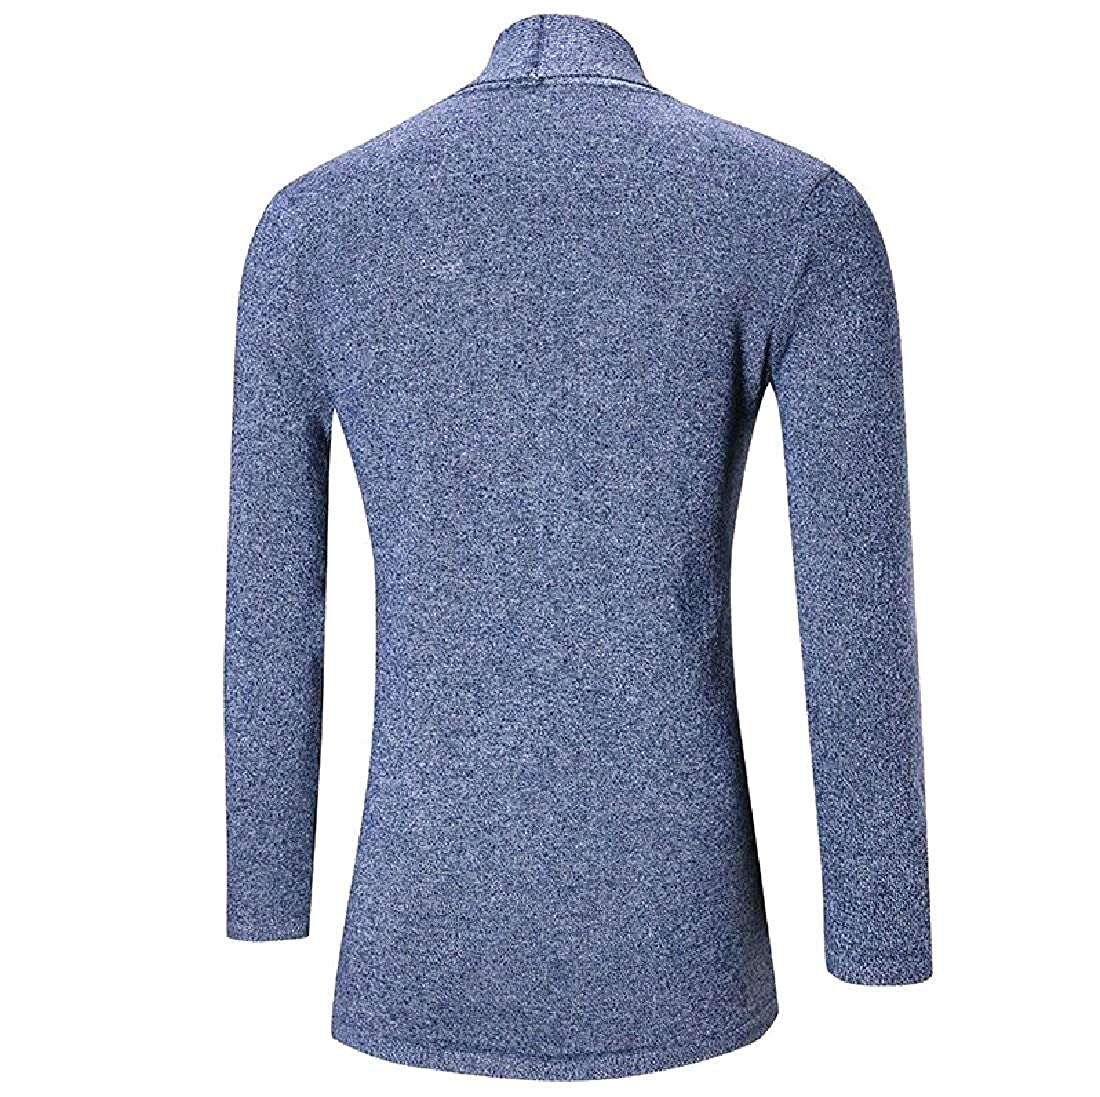 YUNY Mens Business Leisure Plus Size Mid-Long Pullover Sweater Blue M